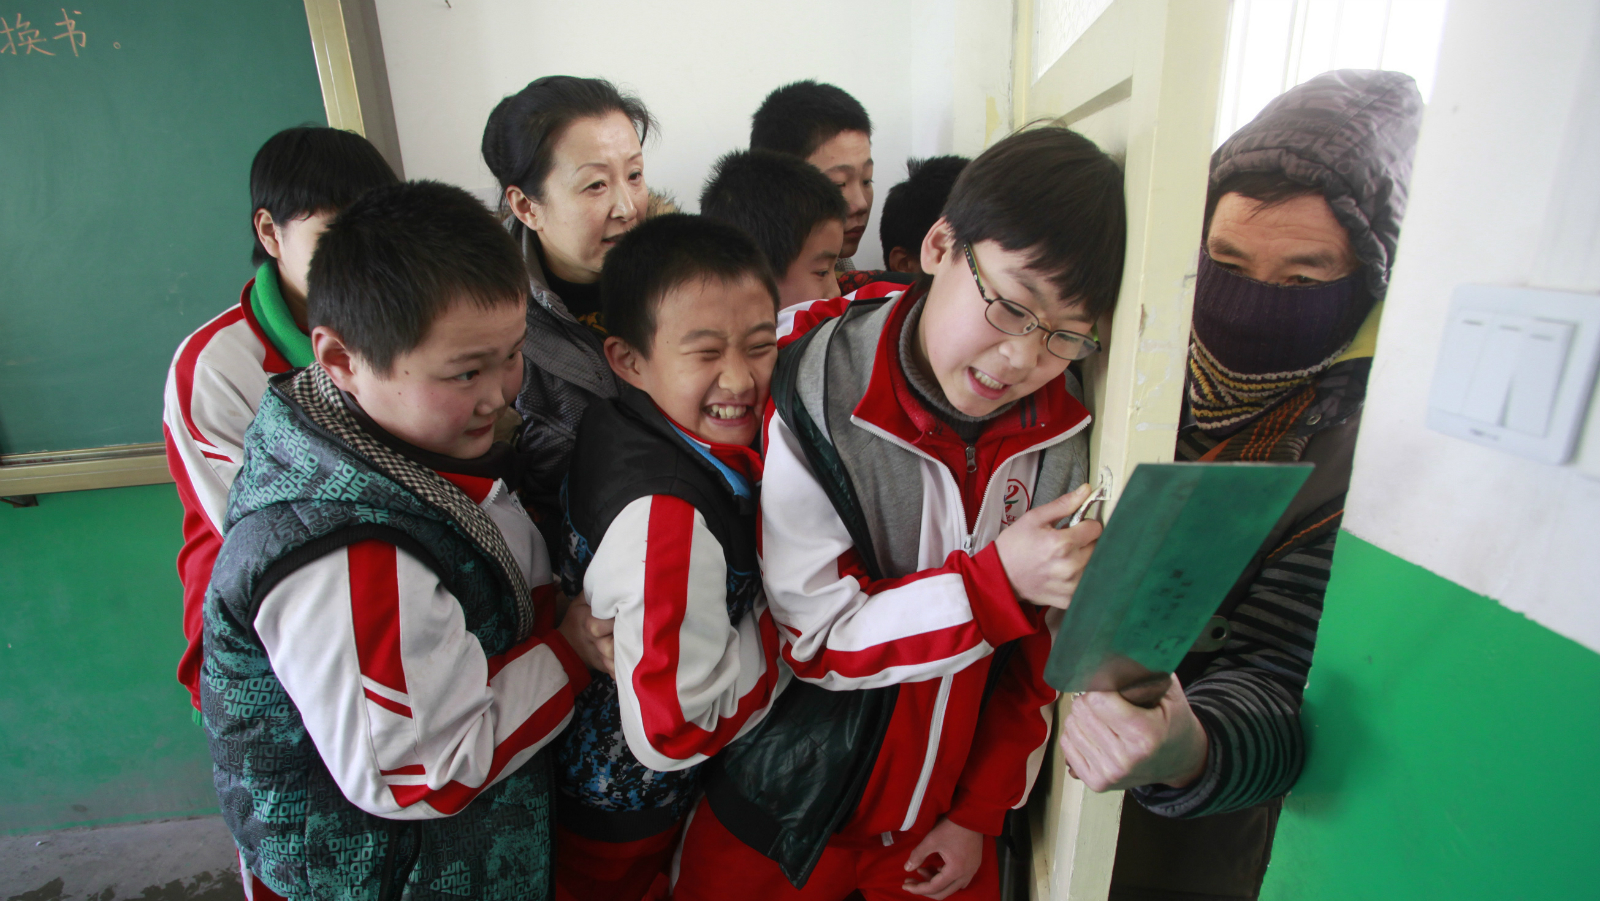 A teacher and her students try to shut a door against an intruder during an anti-violence exercise at a primary school in Jinan, Shandong province, December 18, 2012. The exercise was held four days after last Friday's knife attack at an primary school in Henan province, leaving more than 20 children and an elderly villager injured. Picture taken December 18, 2012. REUTERS/China Daily (CHINA - Tags: CRIME LAW EDUCATION) CHINA OUT. NO COMMERCIAL OR EDITORIAL SALES IN CHINA